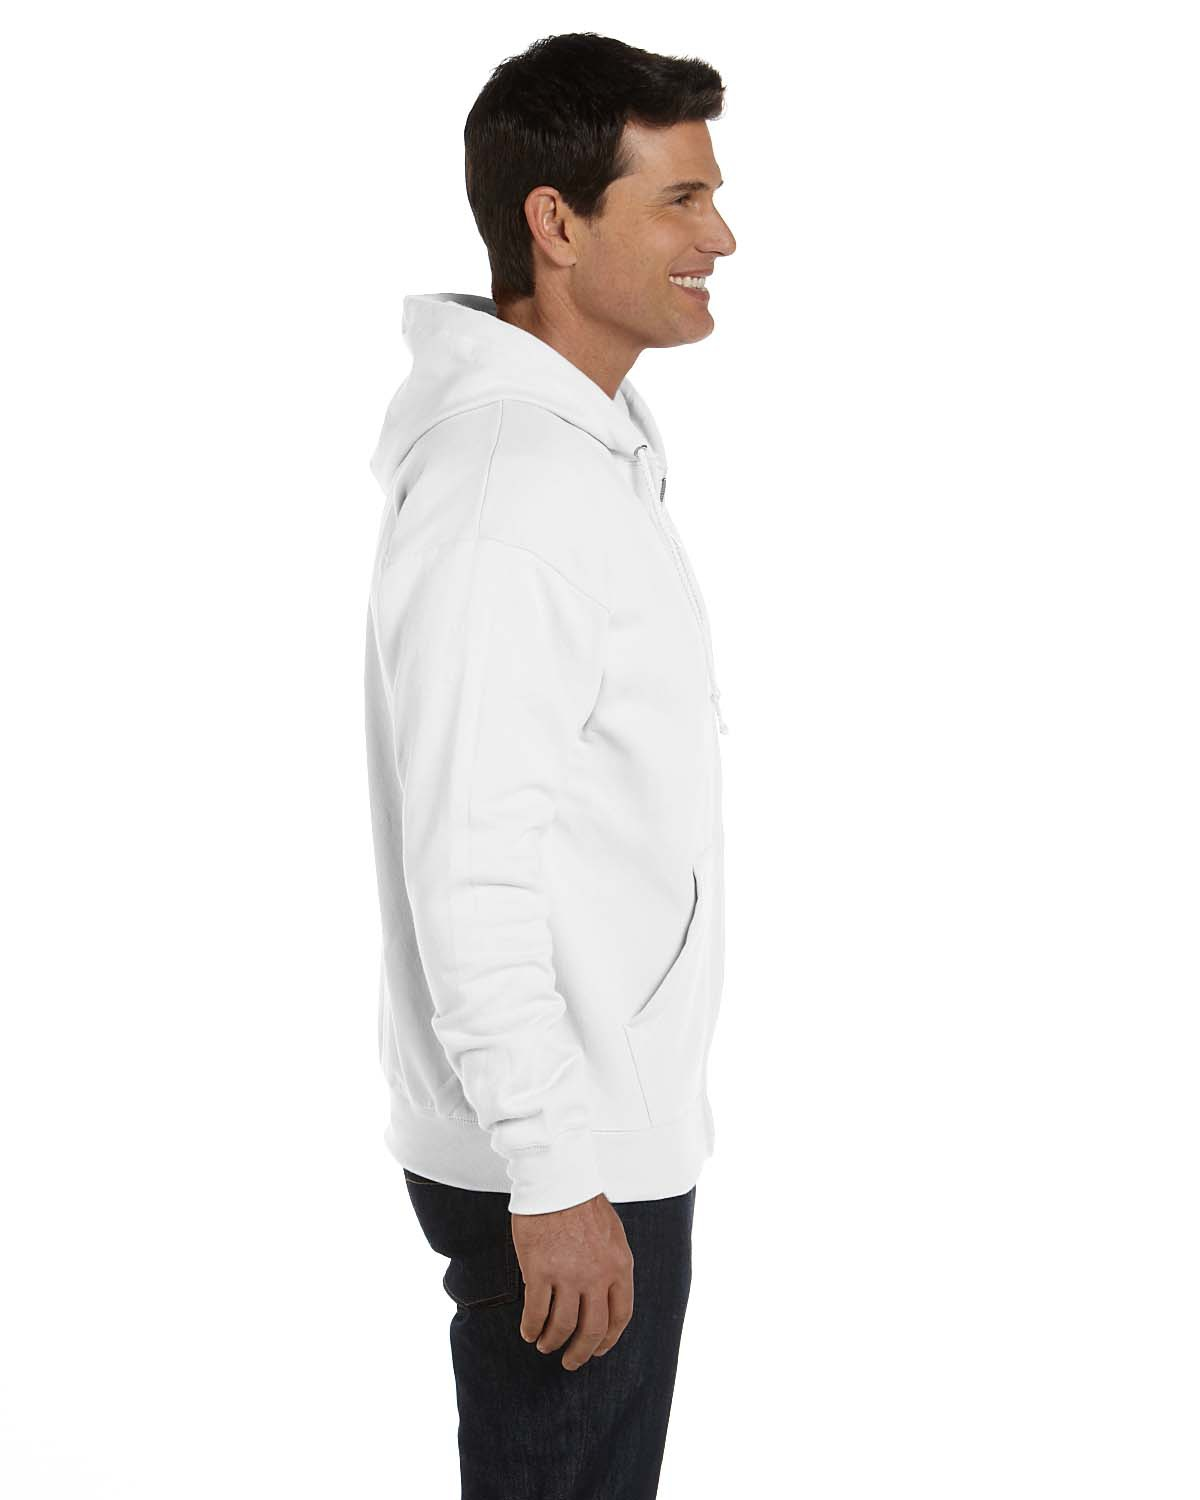 'Hanes P180 Adult Cotton Polyester EcoSmart Full Zip Hood'